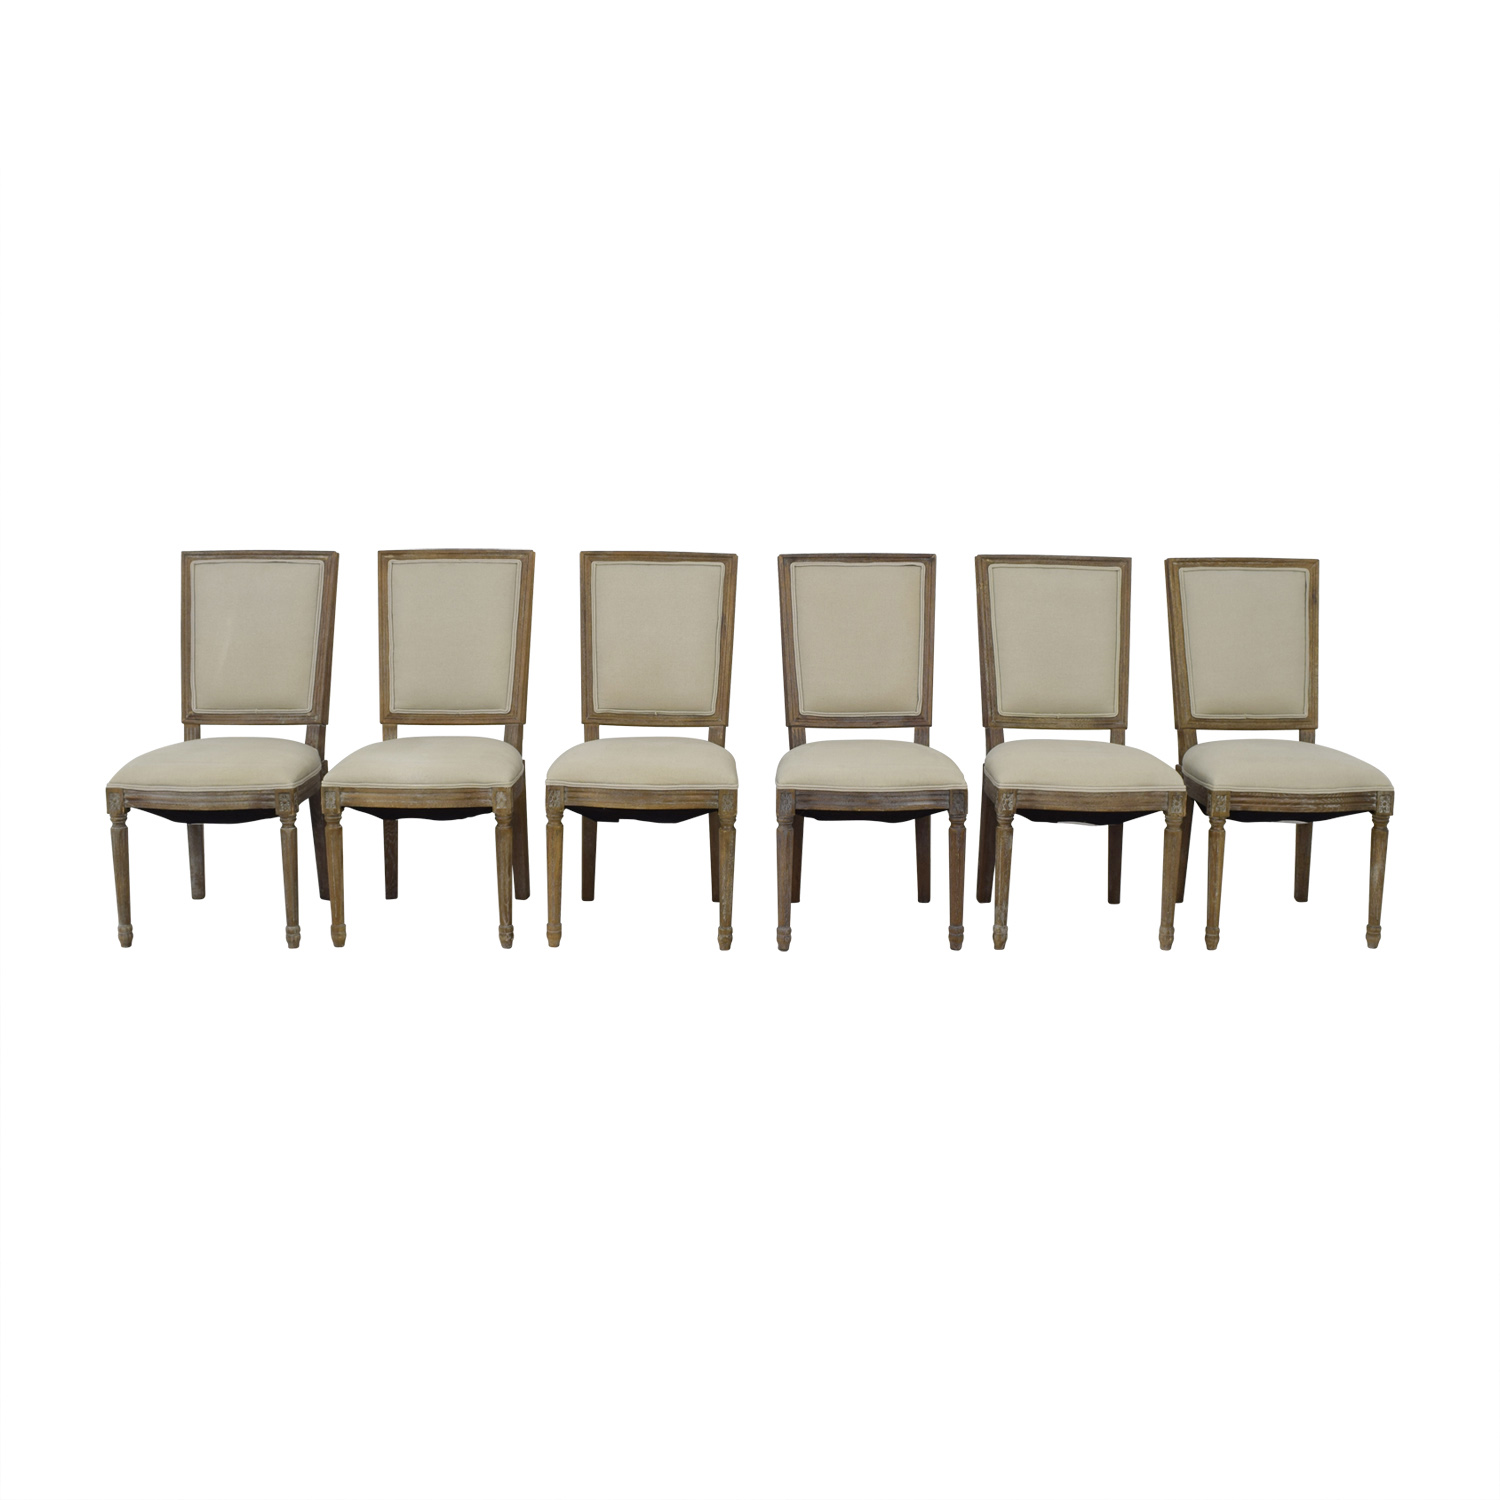 Arhaus Arhaus Adele Grey Upholstered Dining Chairs dimensions  sc 1 st  Kaiyo & 75% OFF - Arhaus Arhaus Adele Grey Upholstered Dining Chairs / Chairs